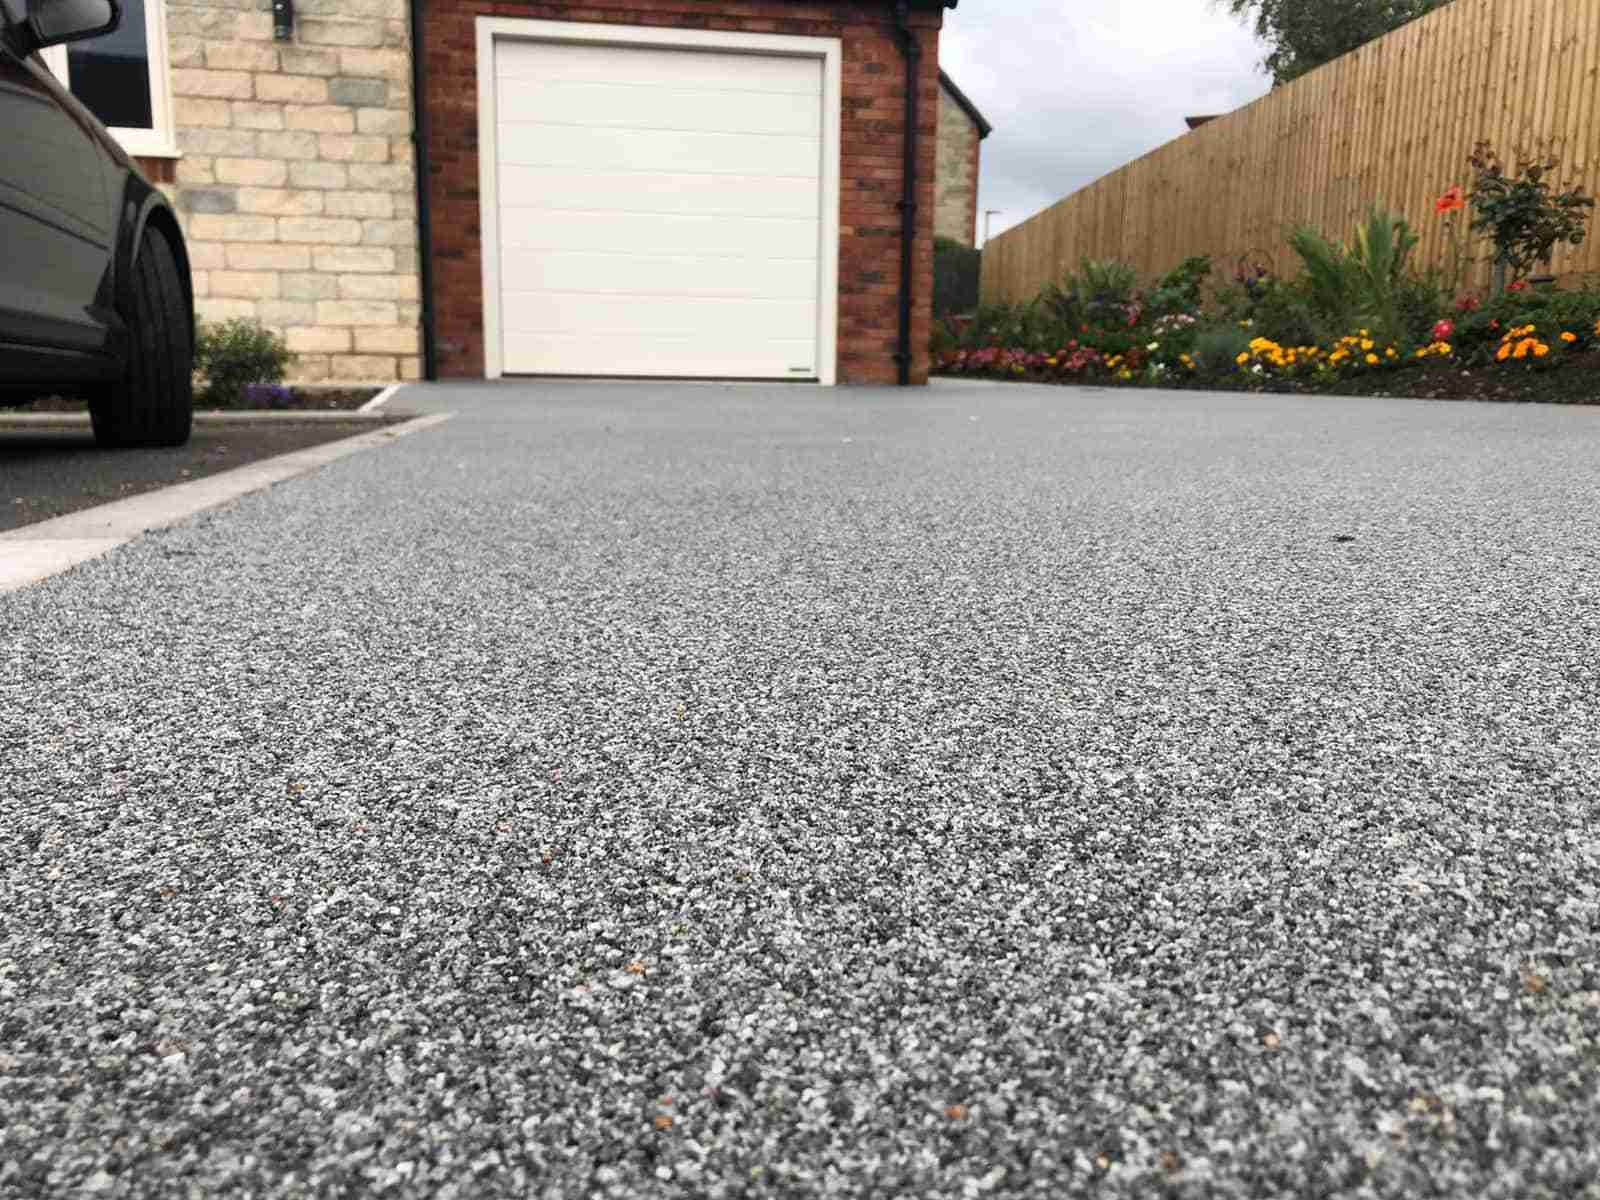 Invest in a new resin driveway